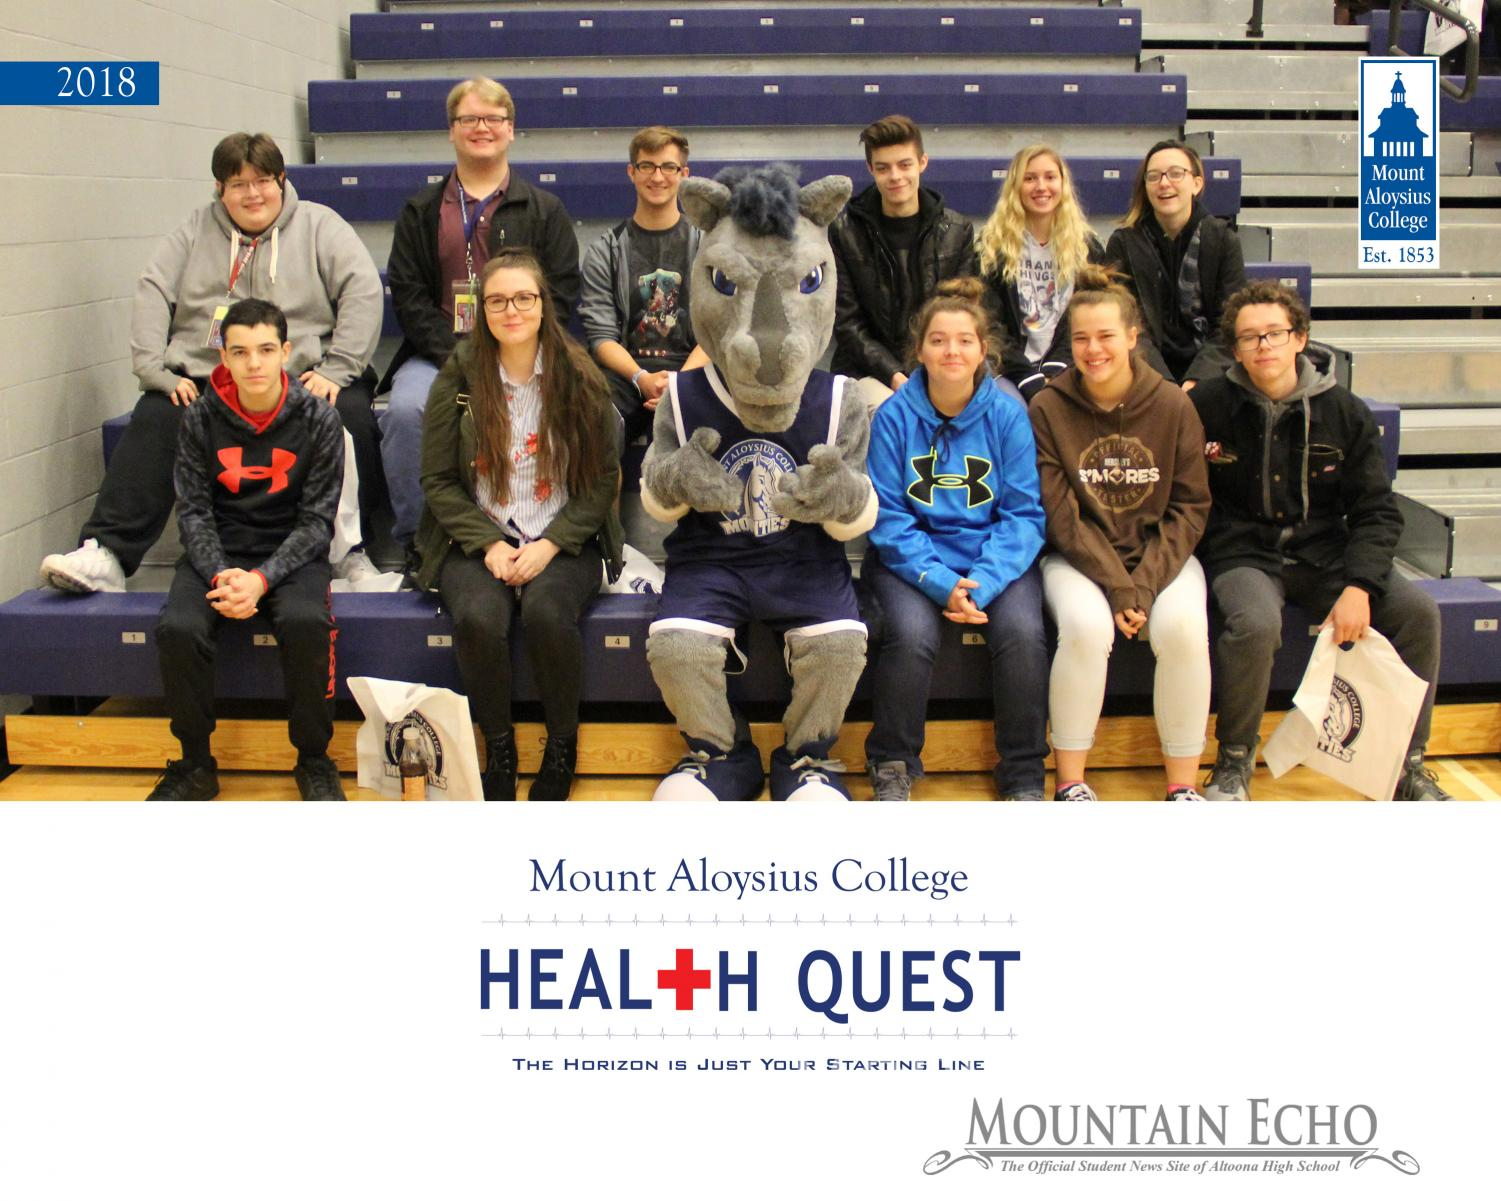 The picture features (front row left-right SOAR members) Derek Stacey, Victoria Shoeman, Alyssa Paige, Ian Pielmeier (back row left-right) Vincent Restauri, Anthony Burd, Nathan Benton, James Leake, Selena Haselbarth and Dunan McHenry.  These students attended Health Quest day at Mount Aloysius College last year.